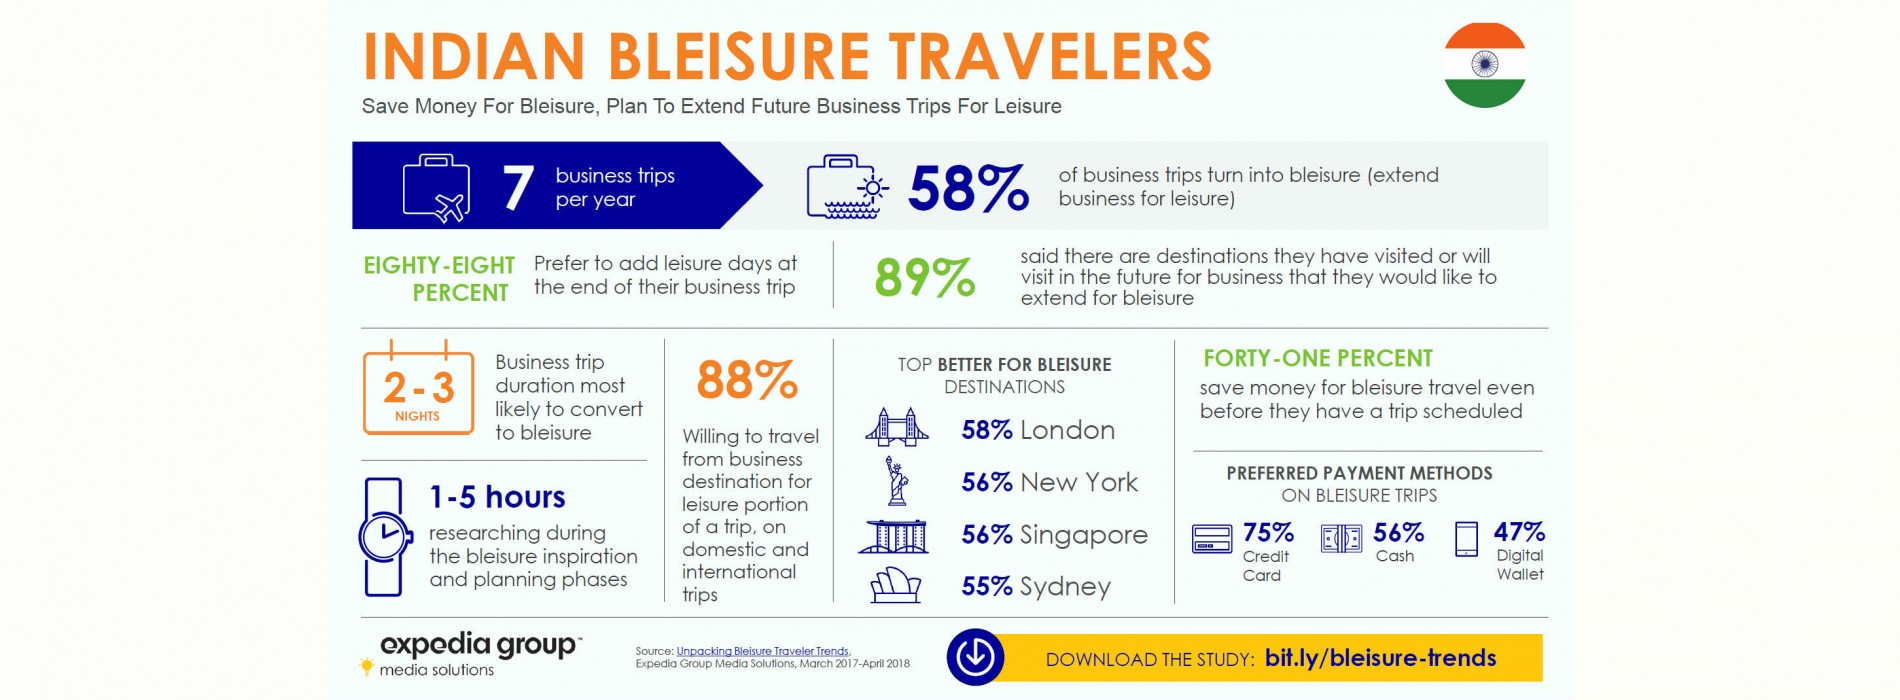 Bleisure booming among Indian business travelers: Expedia Group